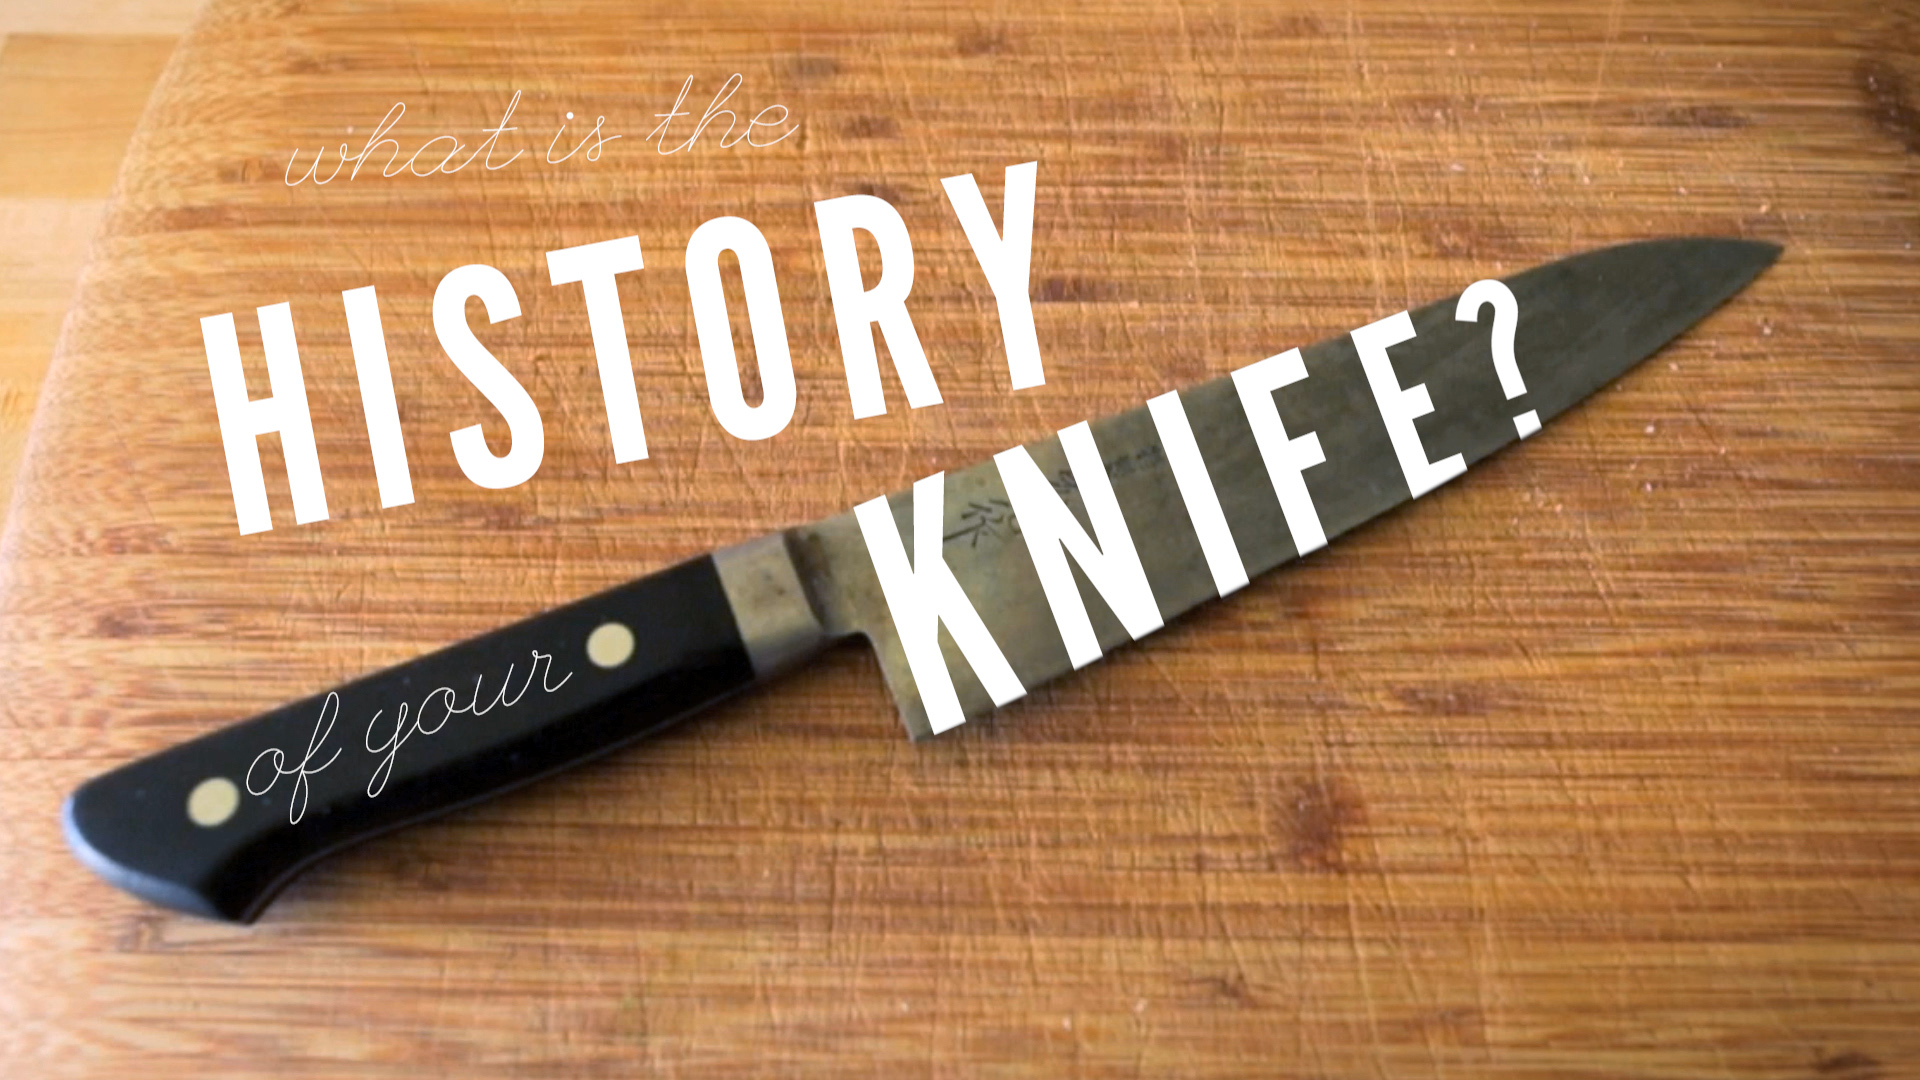 The History of Tandy Wilson's Knife | More Stuff!